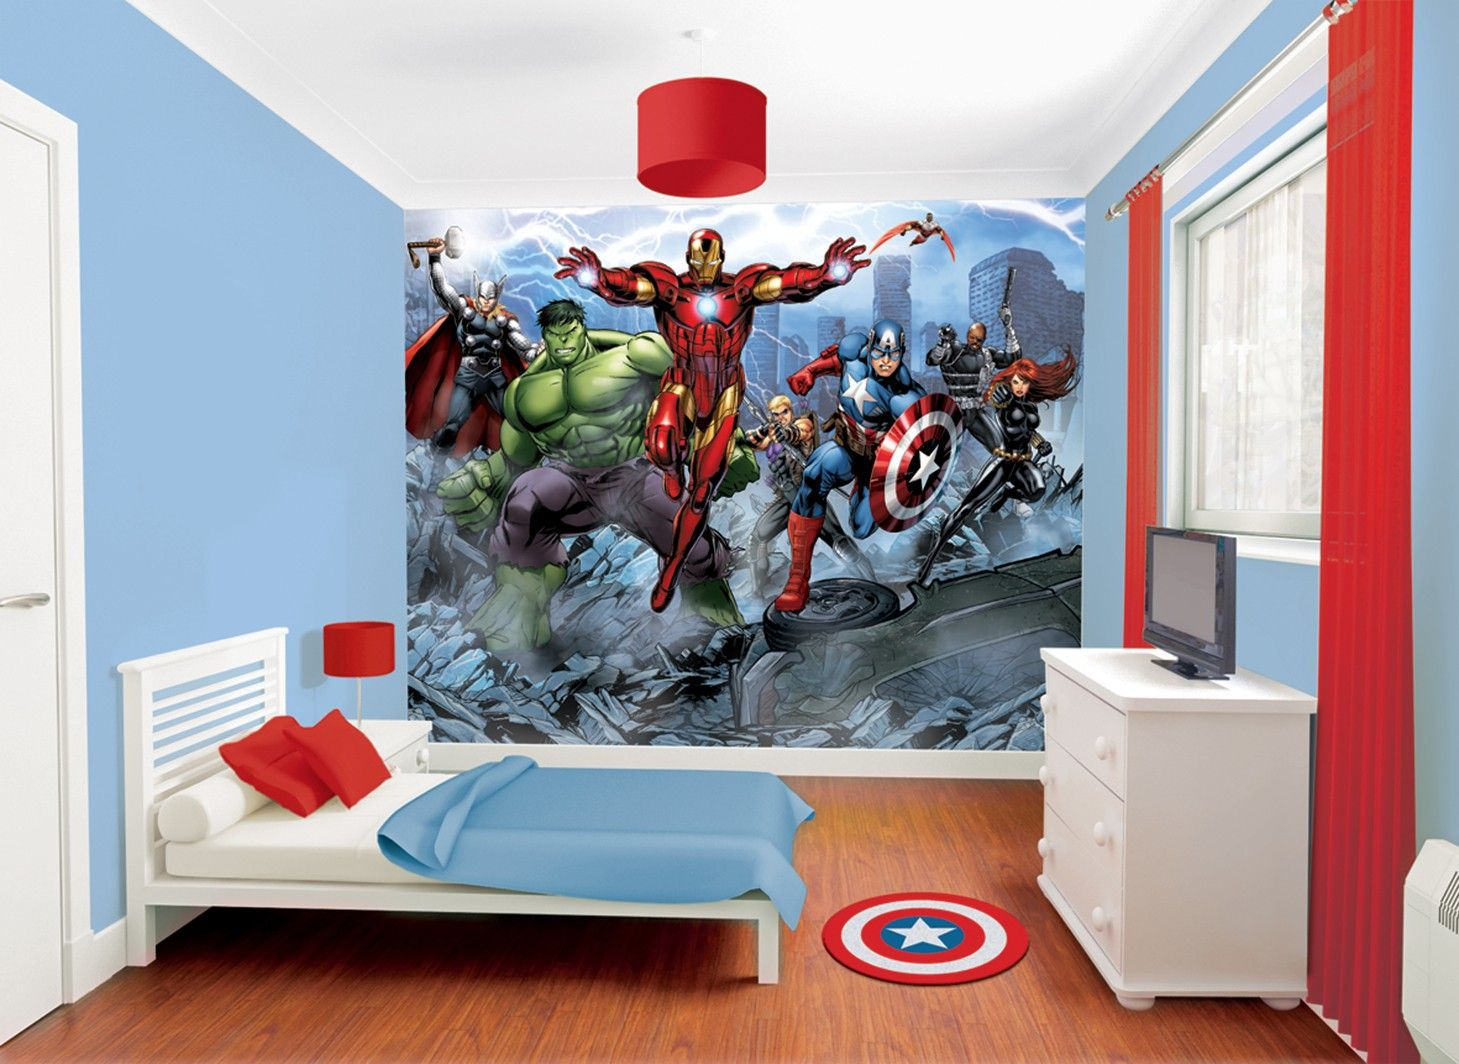 Marvel Themed Room Classy Marvel Avengers Wallpaper Murals.the Boys Need This For Their Design Inspiration